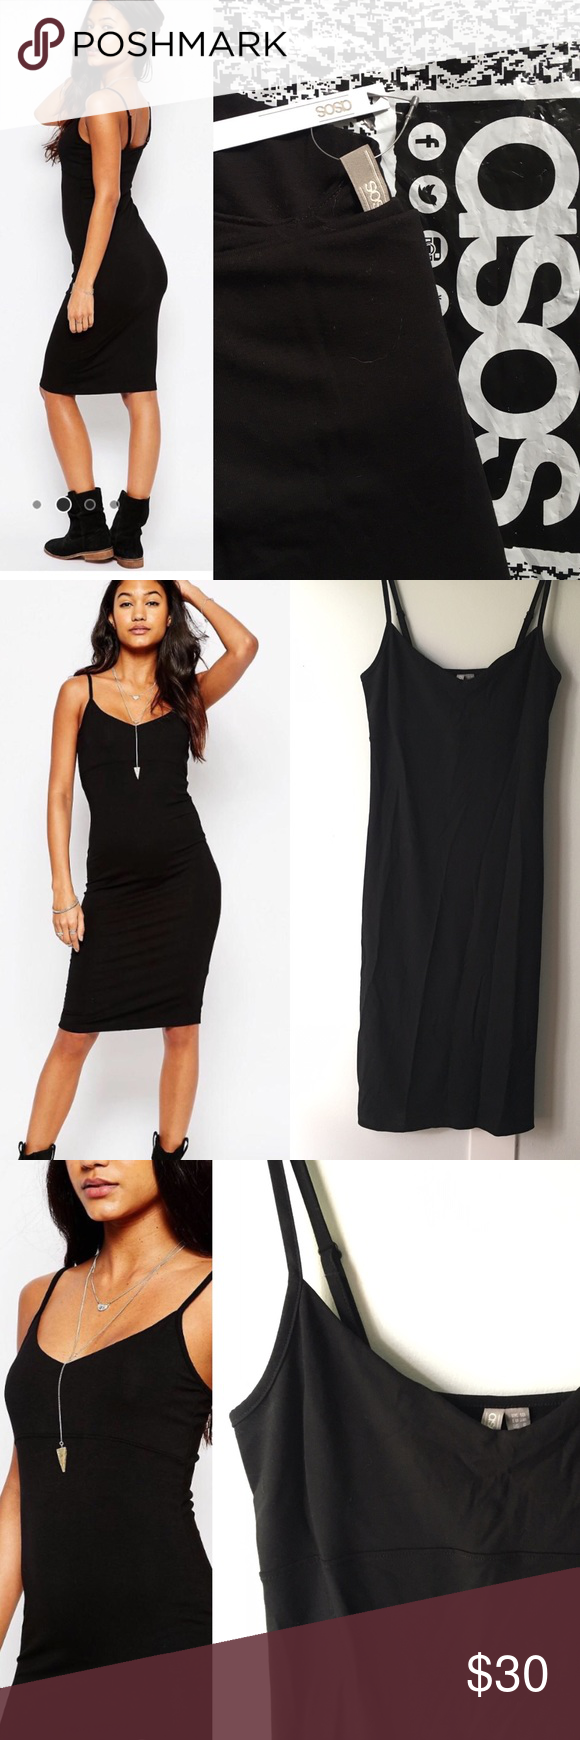 NWT ASOS structured bodycon cami midi dress Color: Black Size: Small  Material: 97% viscose, 3% elastase Brand: ASOS - NWT *soft touch jersey, scoop neckline, adjustable straps, close-cut body-conscious fit. Adorable with heels! Dresses Midi